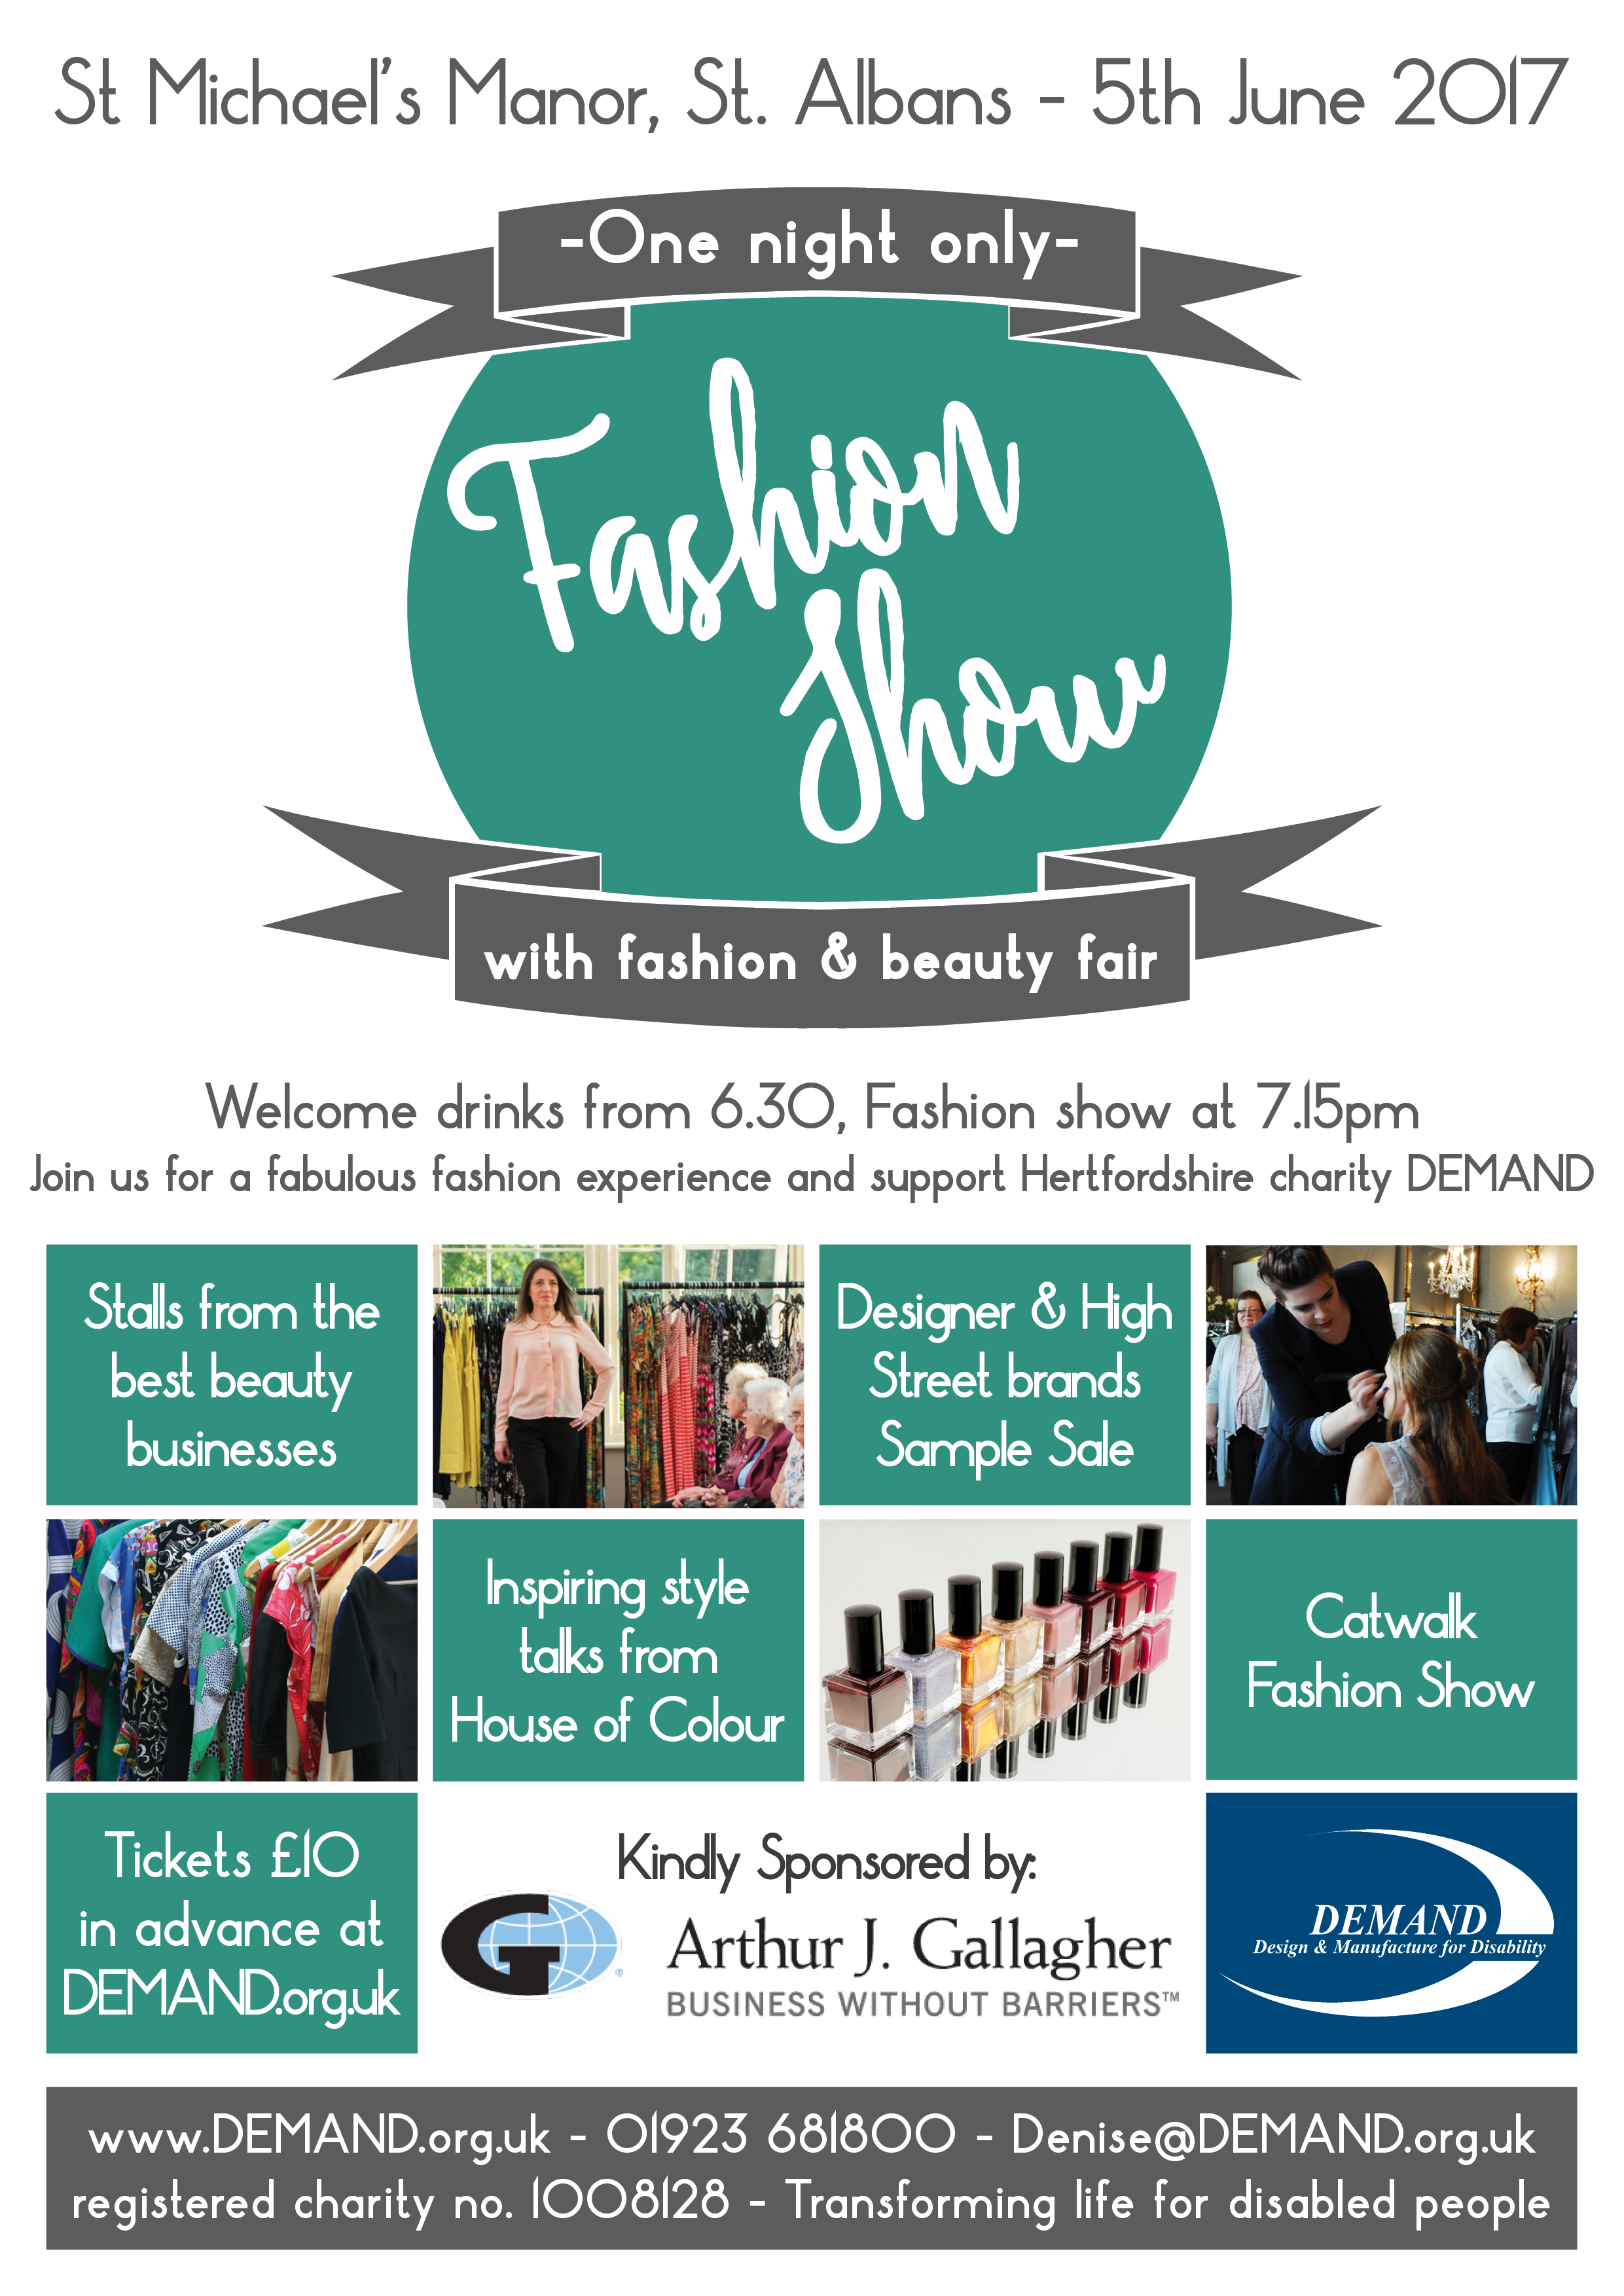 95cf8c652293 This June, St Michael's Manor Hotel in St. Albans will play host to  DEMAND's fundraising fashion extravaganza!